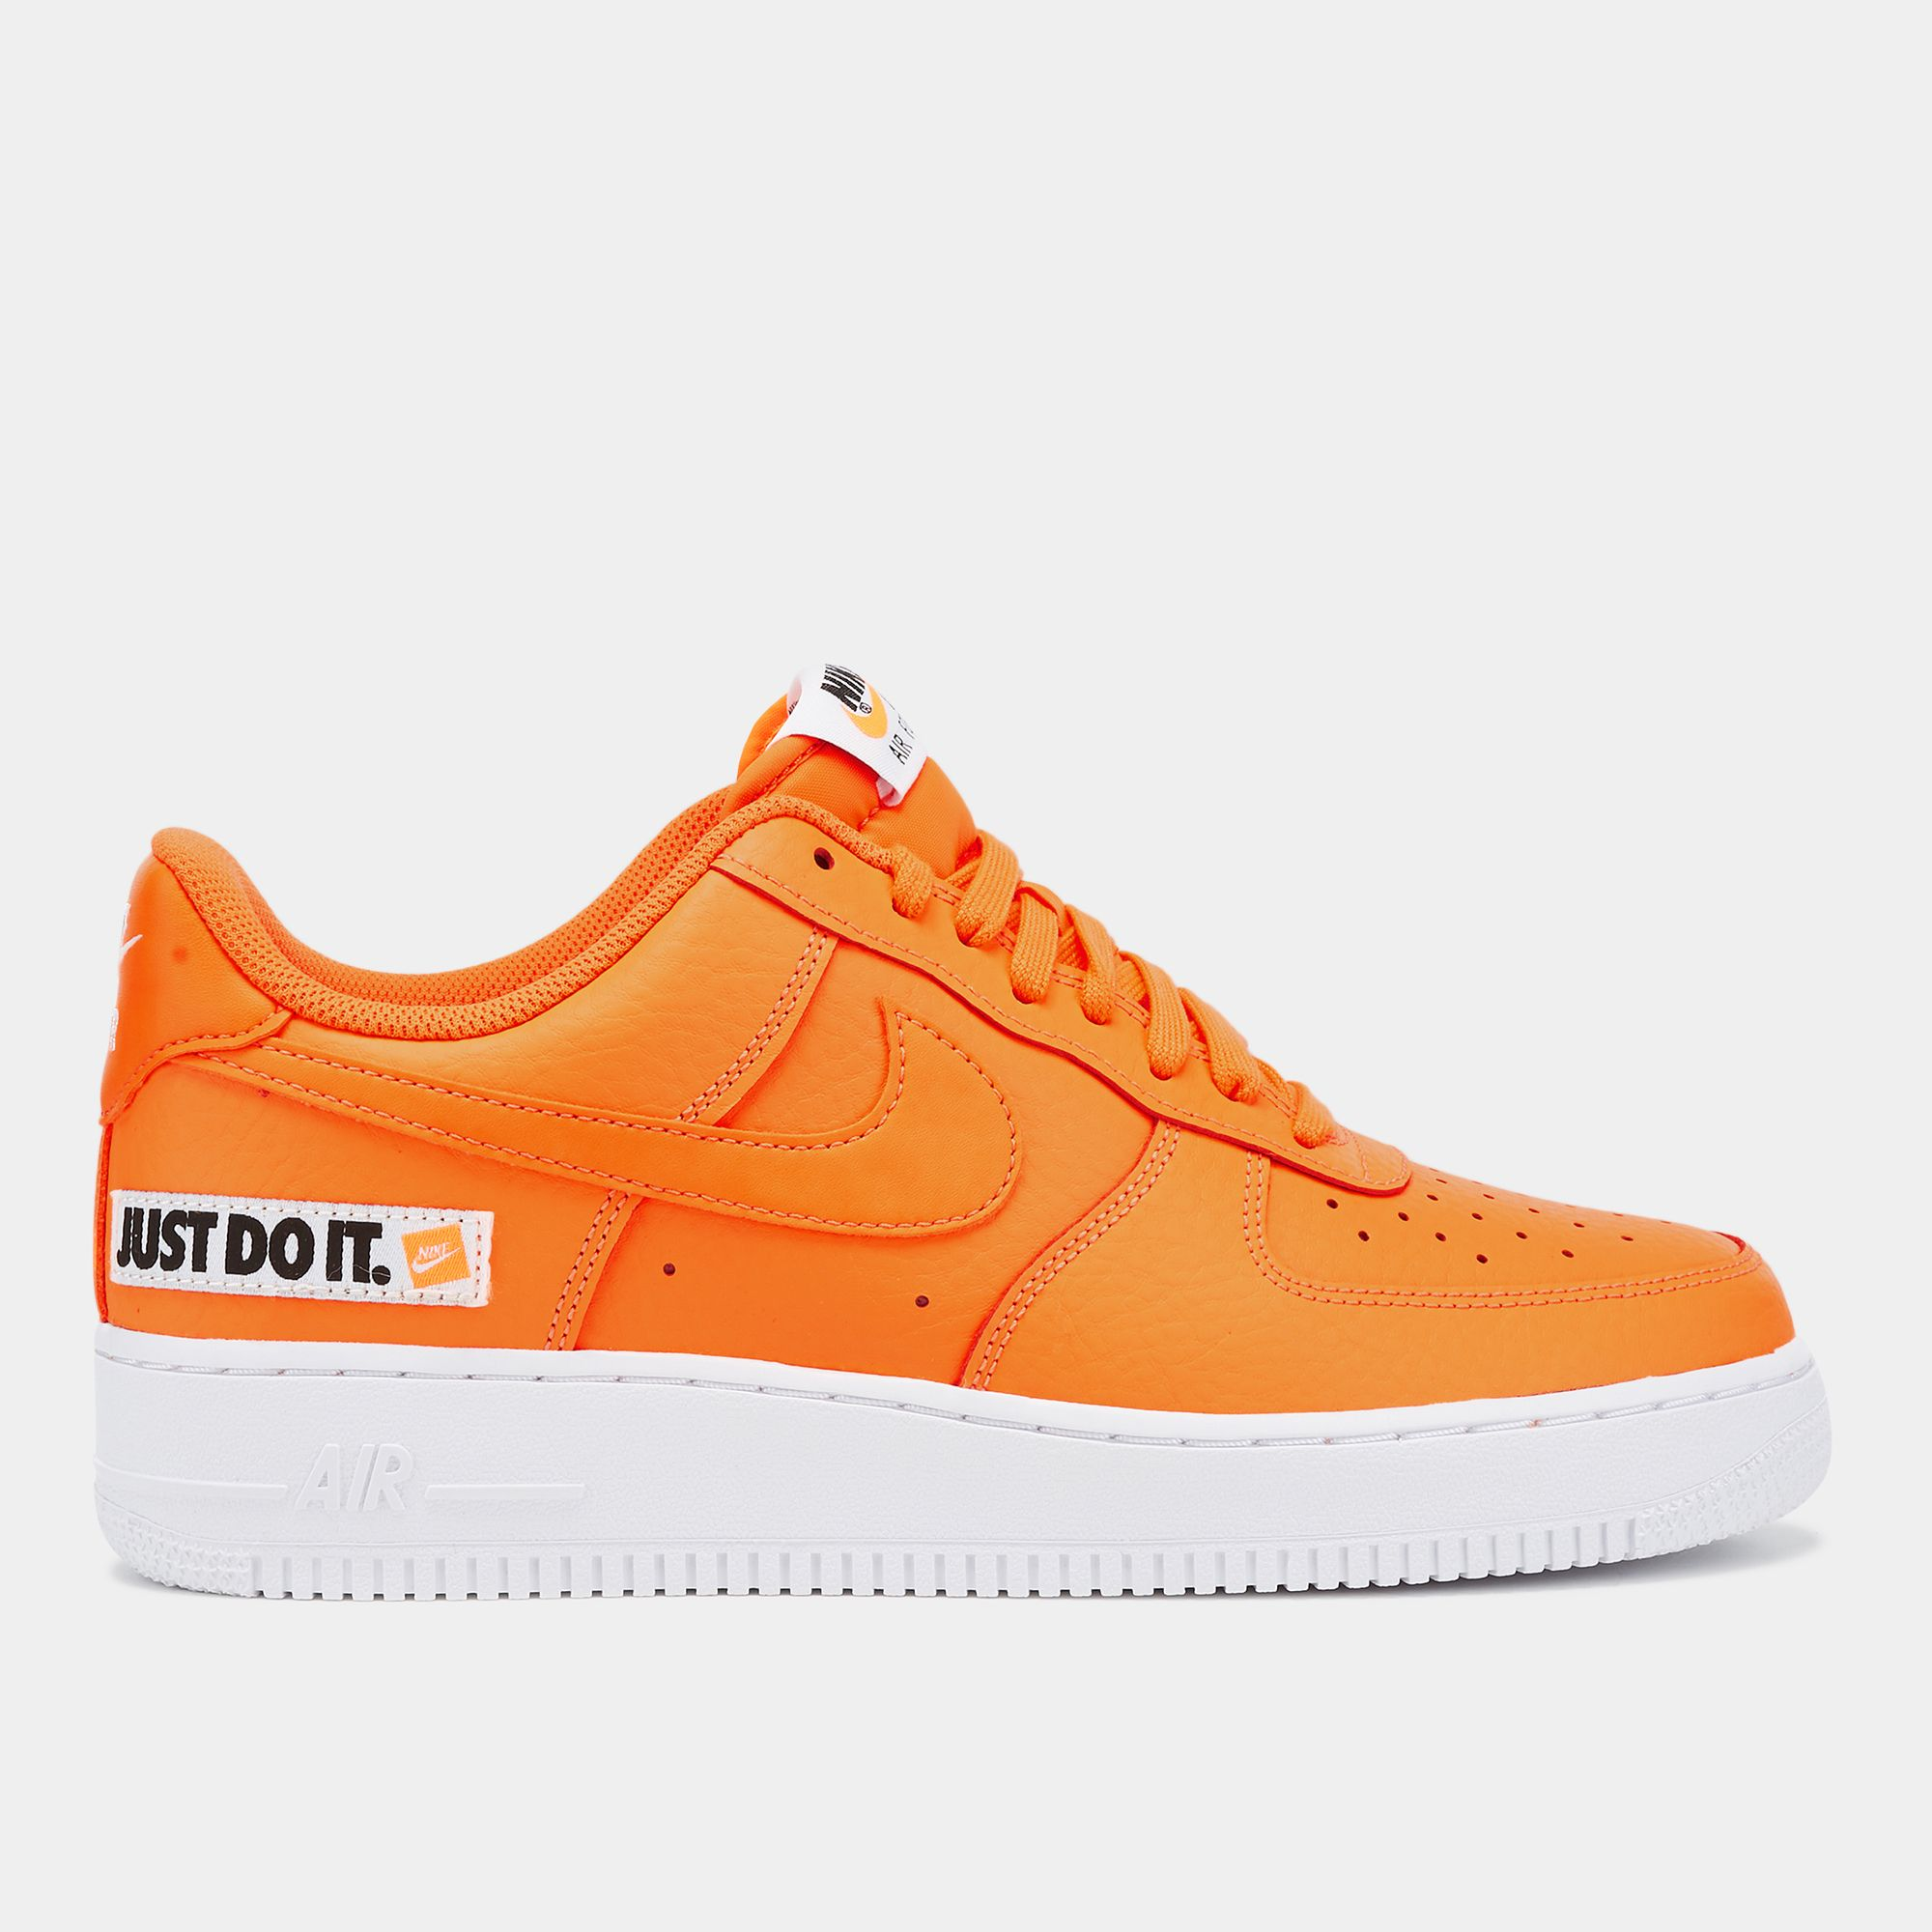 hot sale online 0fe9a 14f04 Nike Air Force 1  07 LV8 JDI Leather Shoe   Sneakers   Shoes   Men s Sale    Sale   SSS